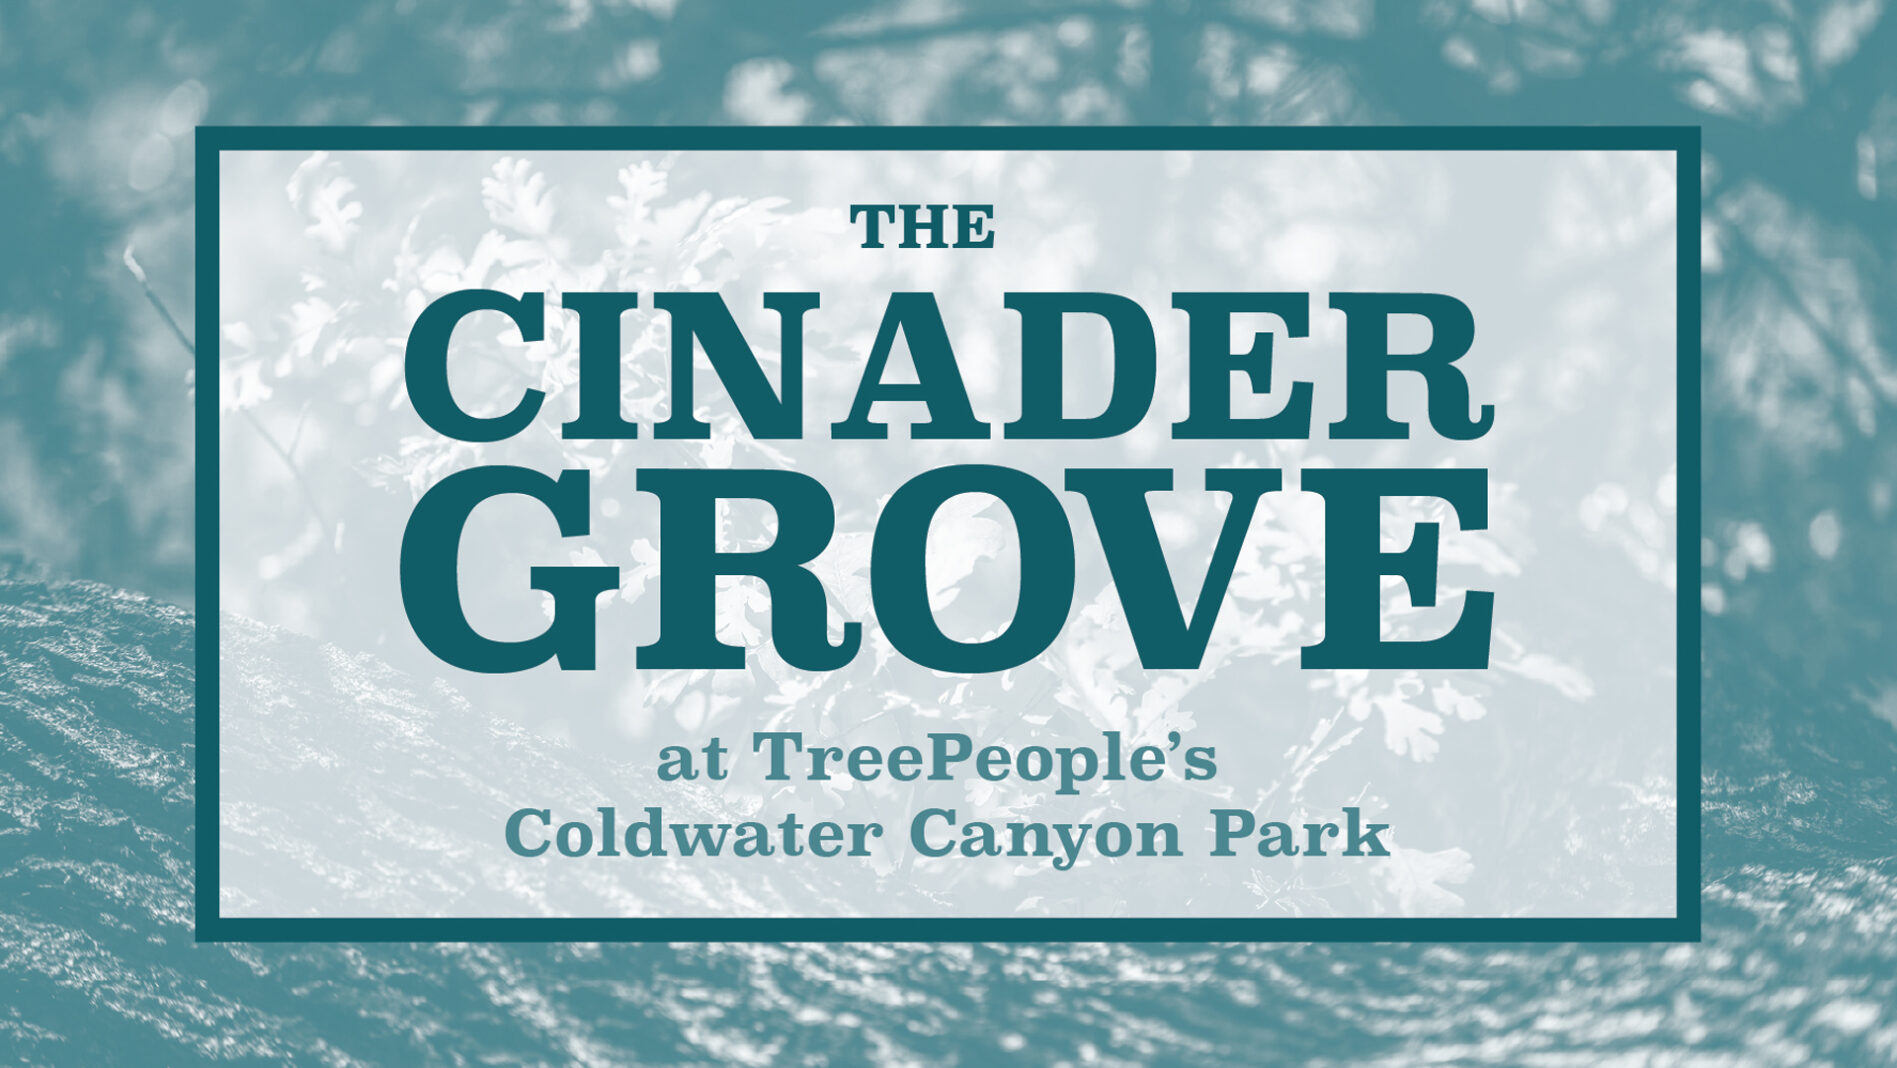 The Cinader Grove at TreePeople's Coldwater Canyon Park